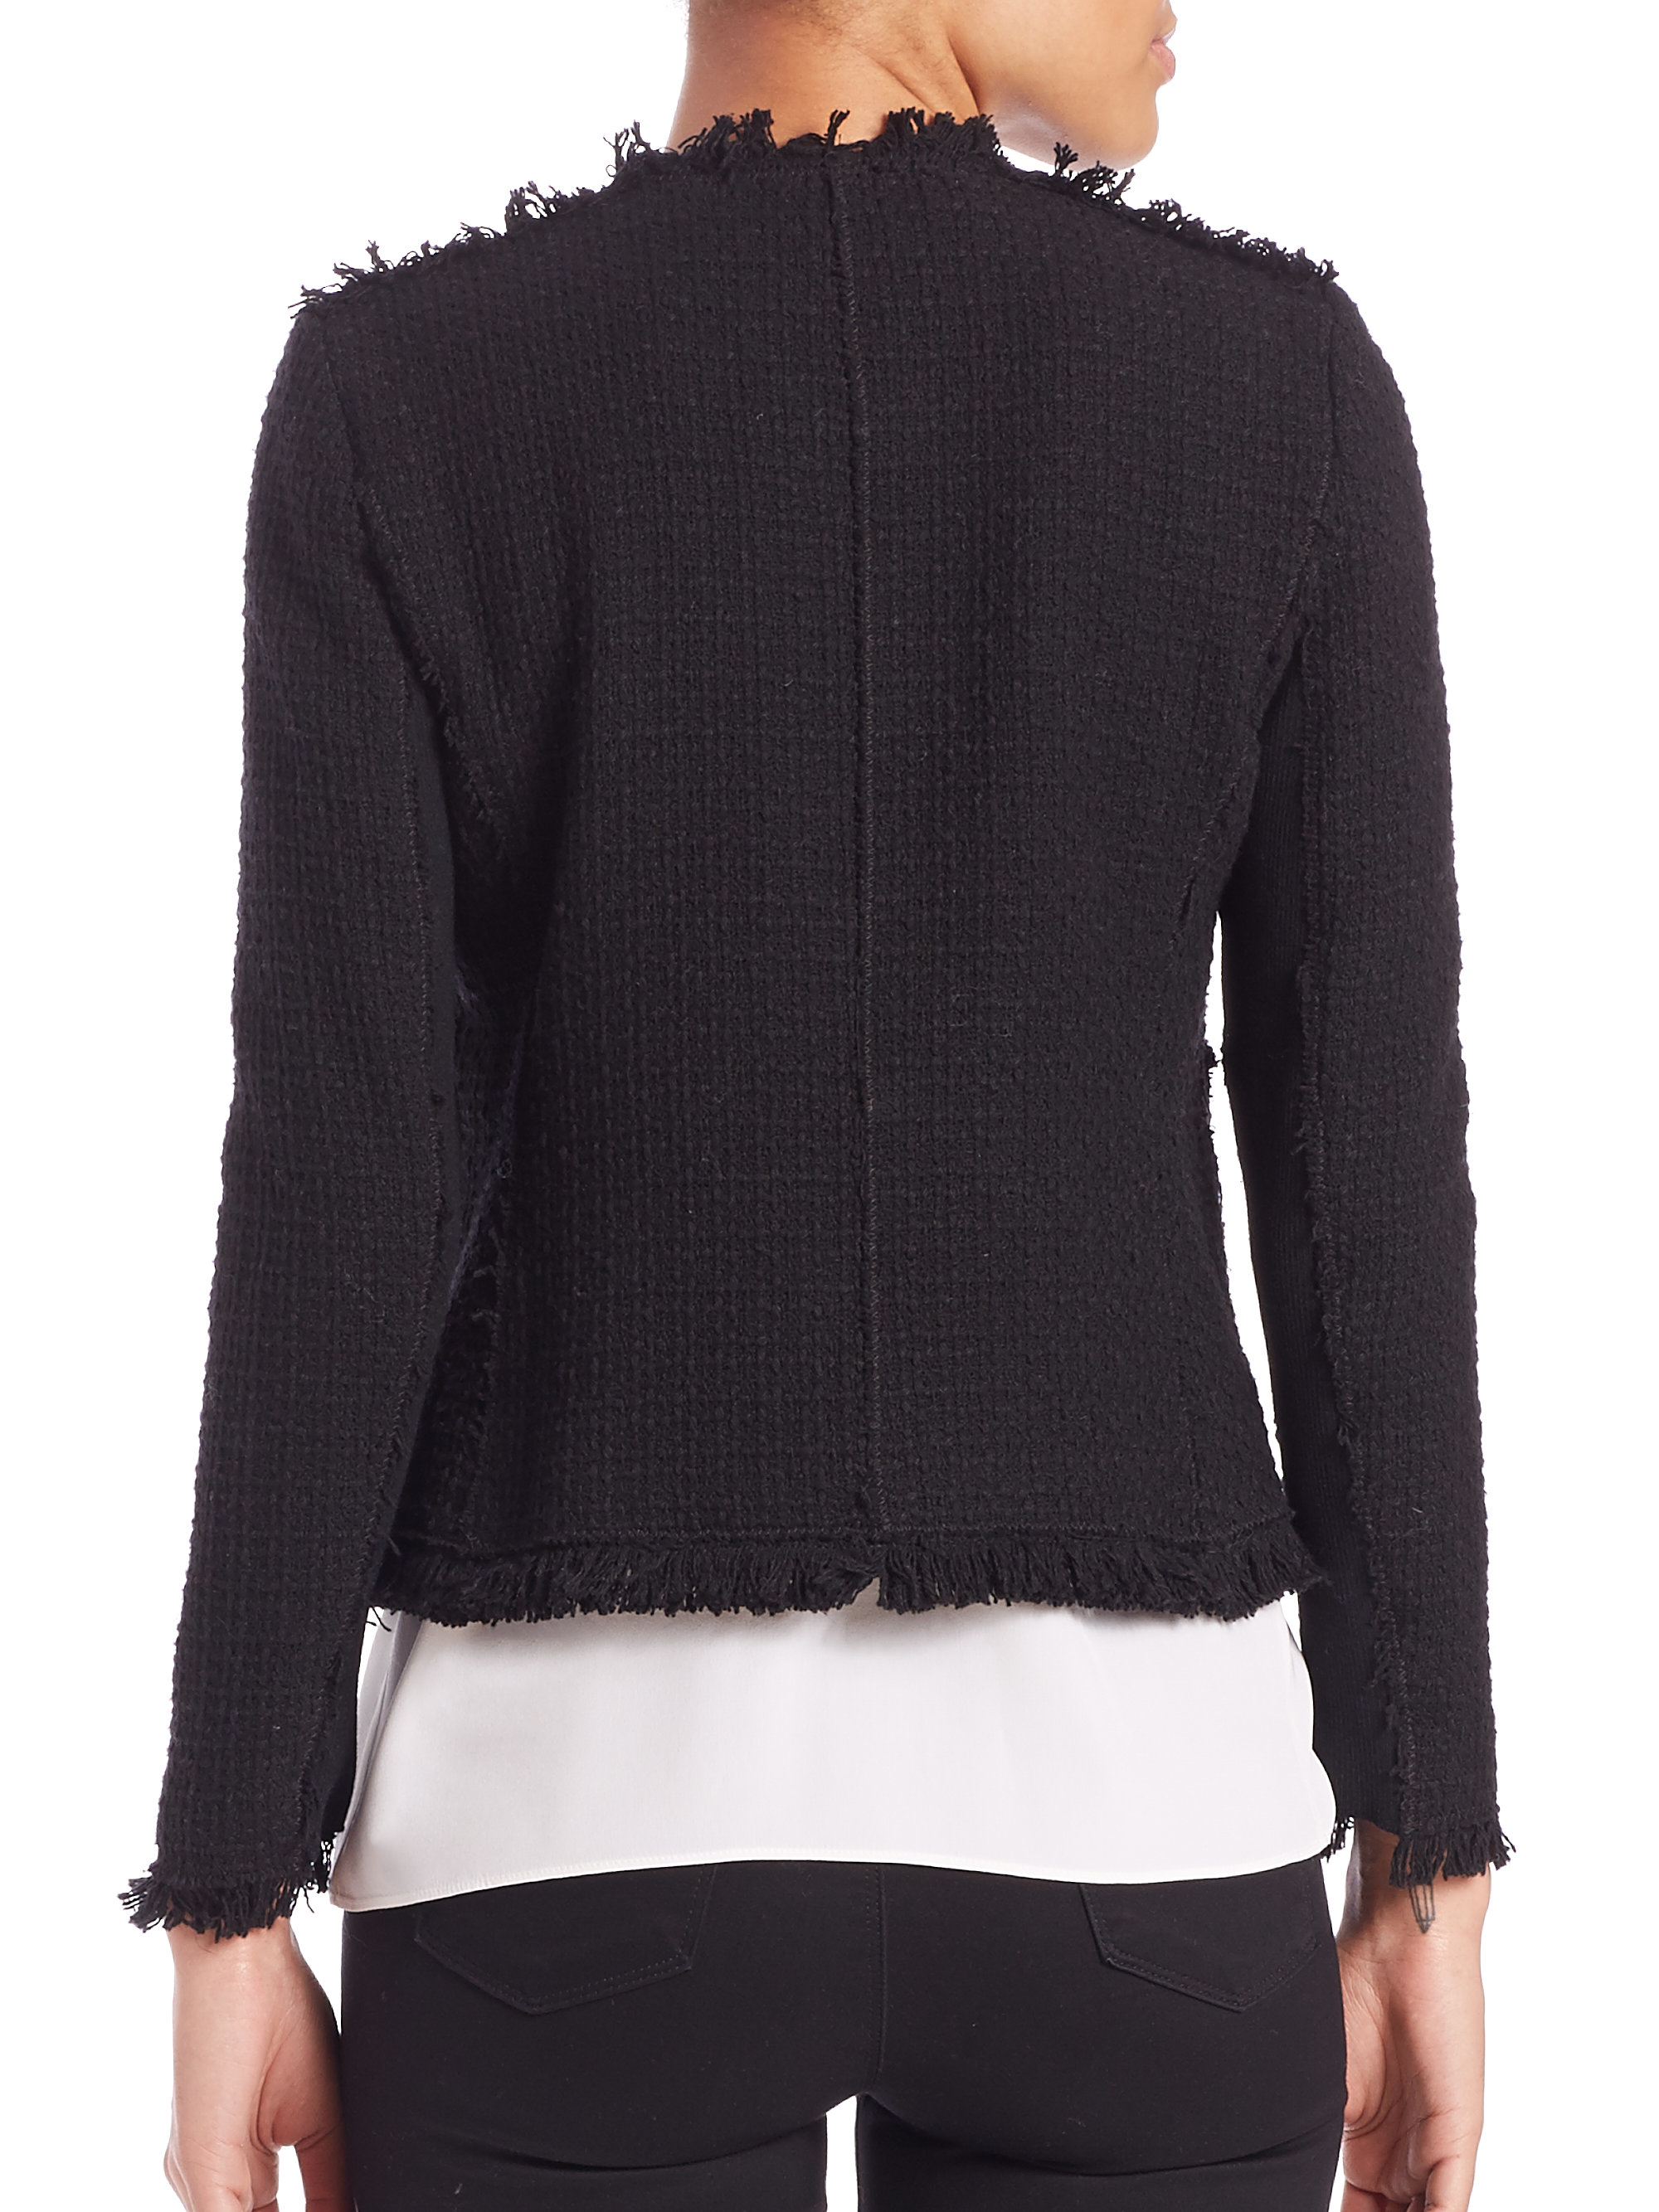 Rebecca taylor Embellished Tweed Jacket in Black | Lyst